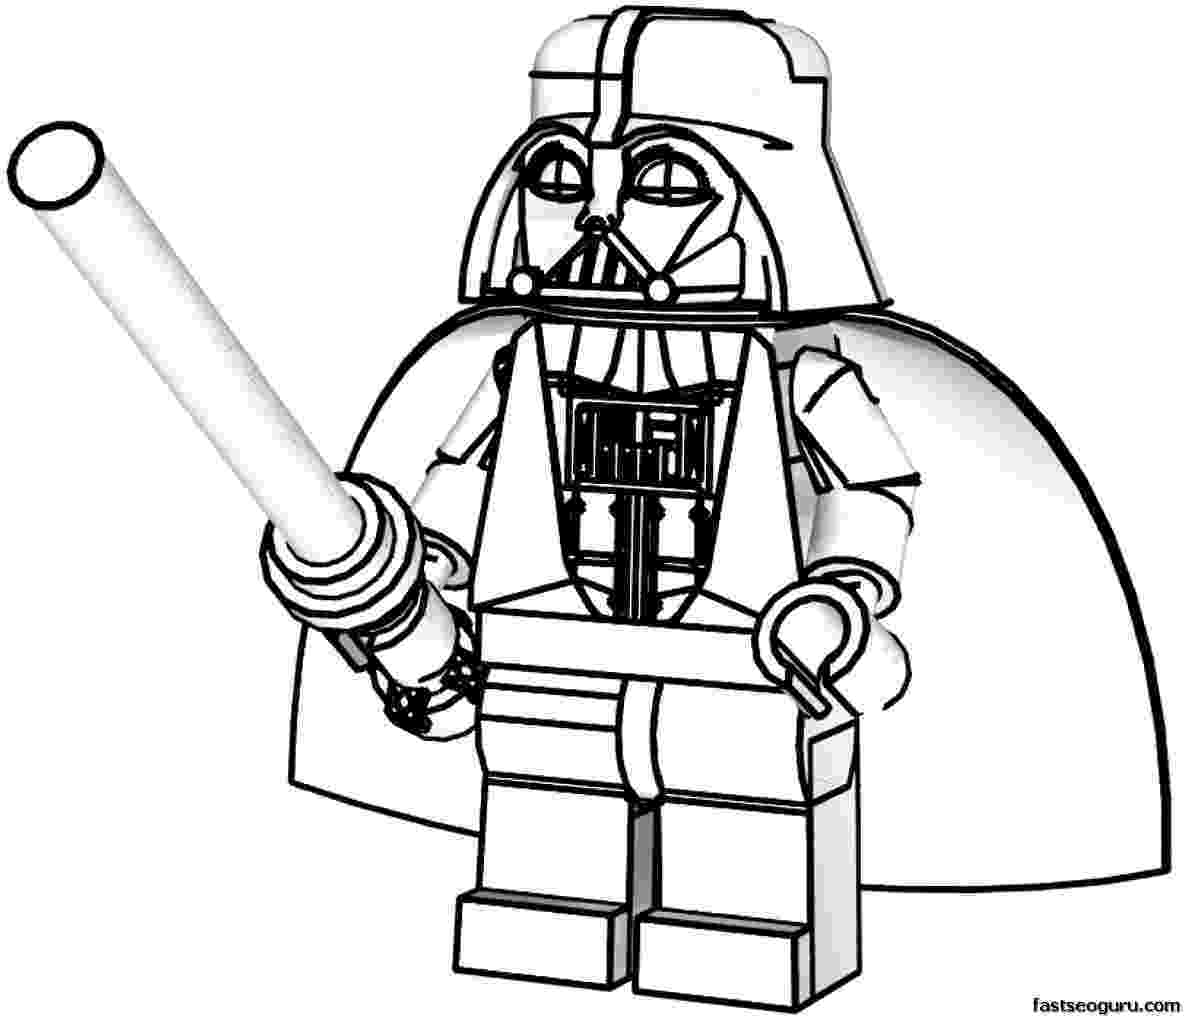 star wars print out coloring pages star wars coloring pages the force awakens coloring pages coloring wars pages star out print